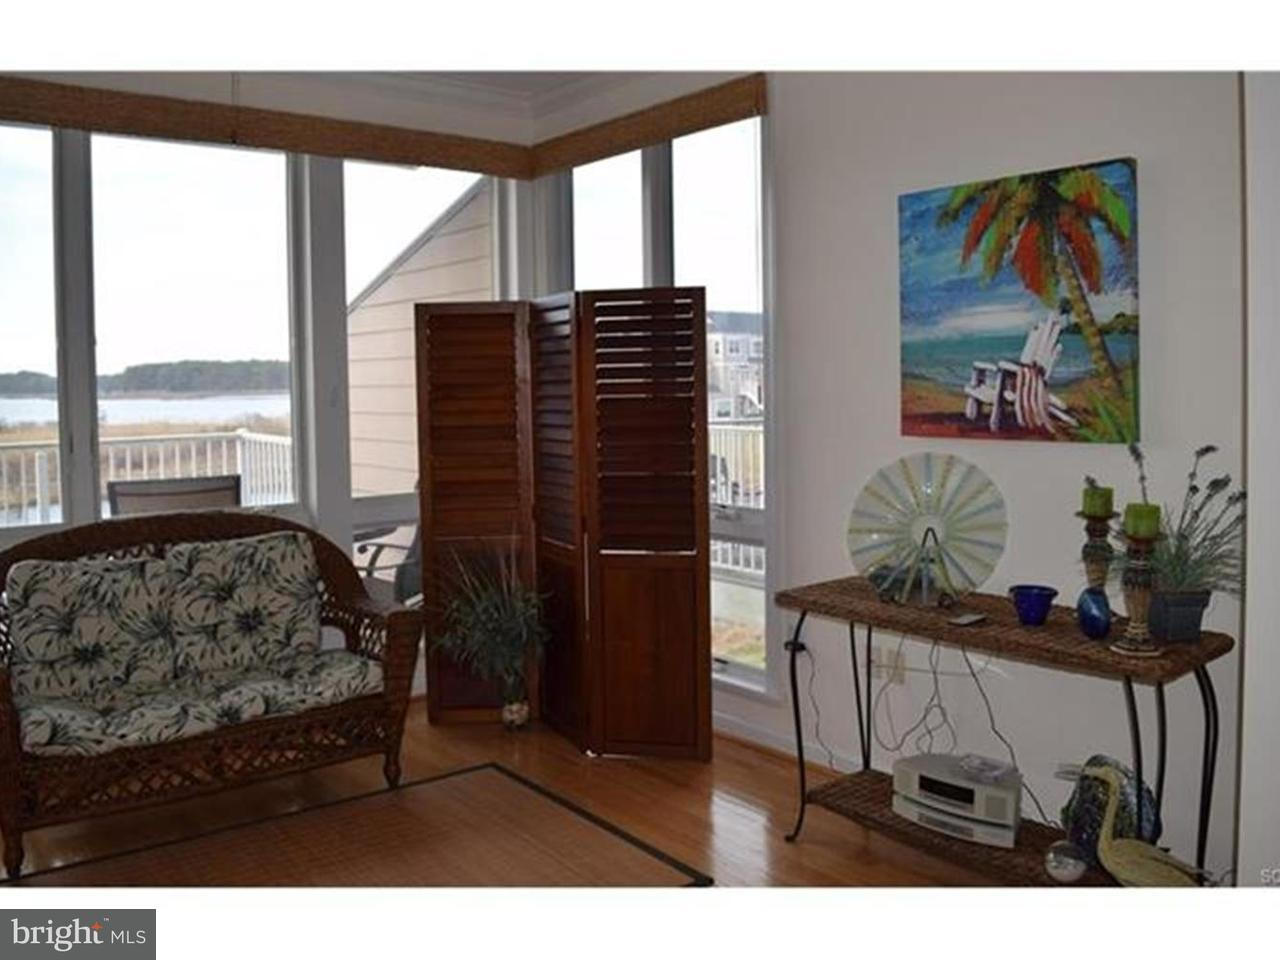 Additional photo for property listing at 38331 OCEAN VISTA DR #1160  赛尔比维尔, 特拉华州 19975 美国